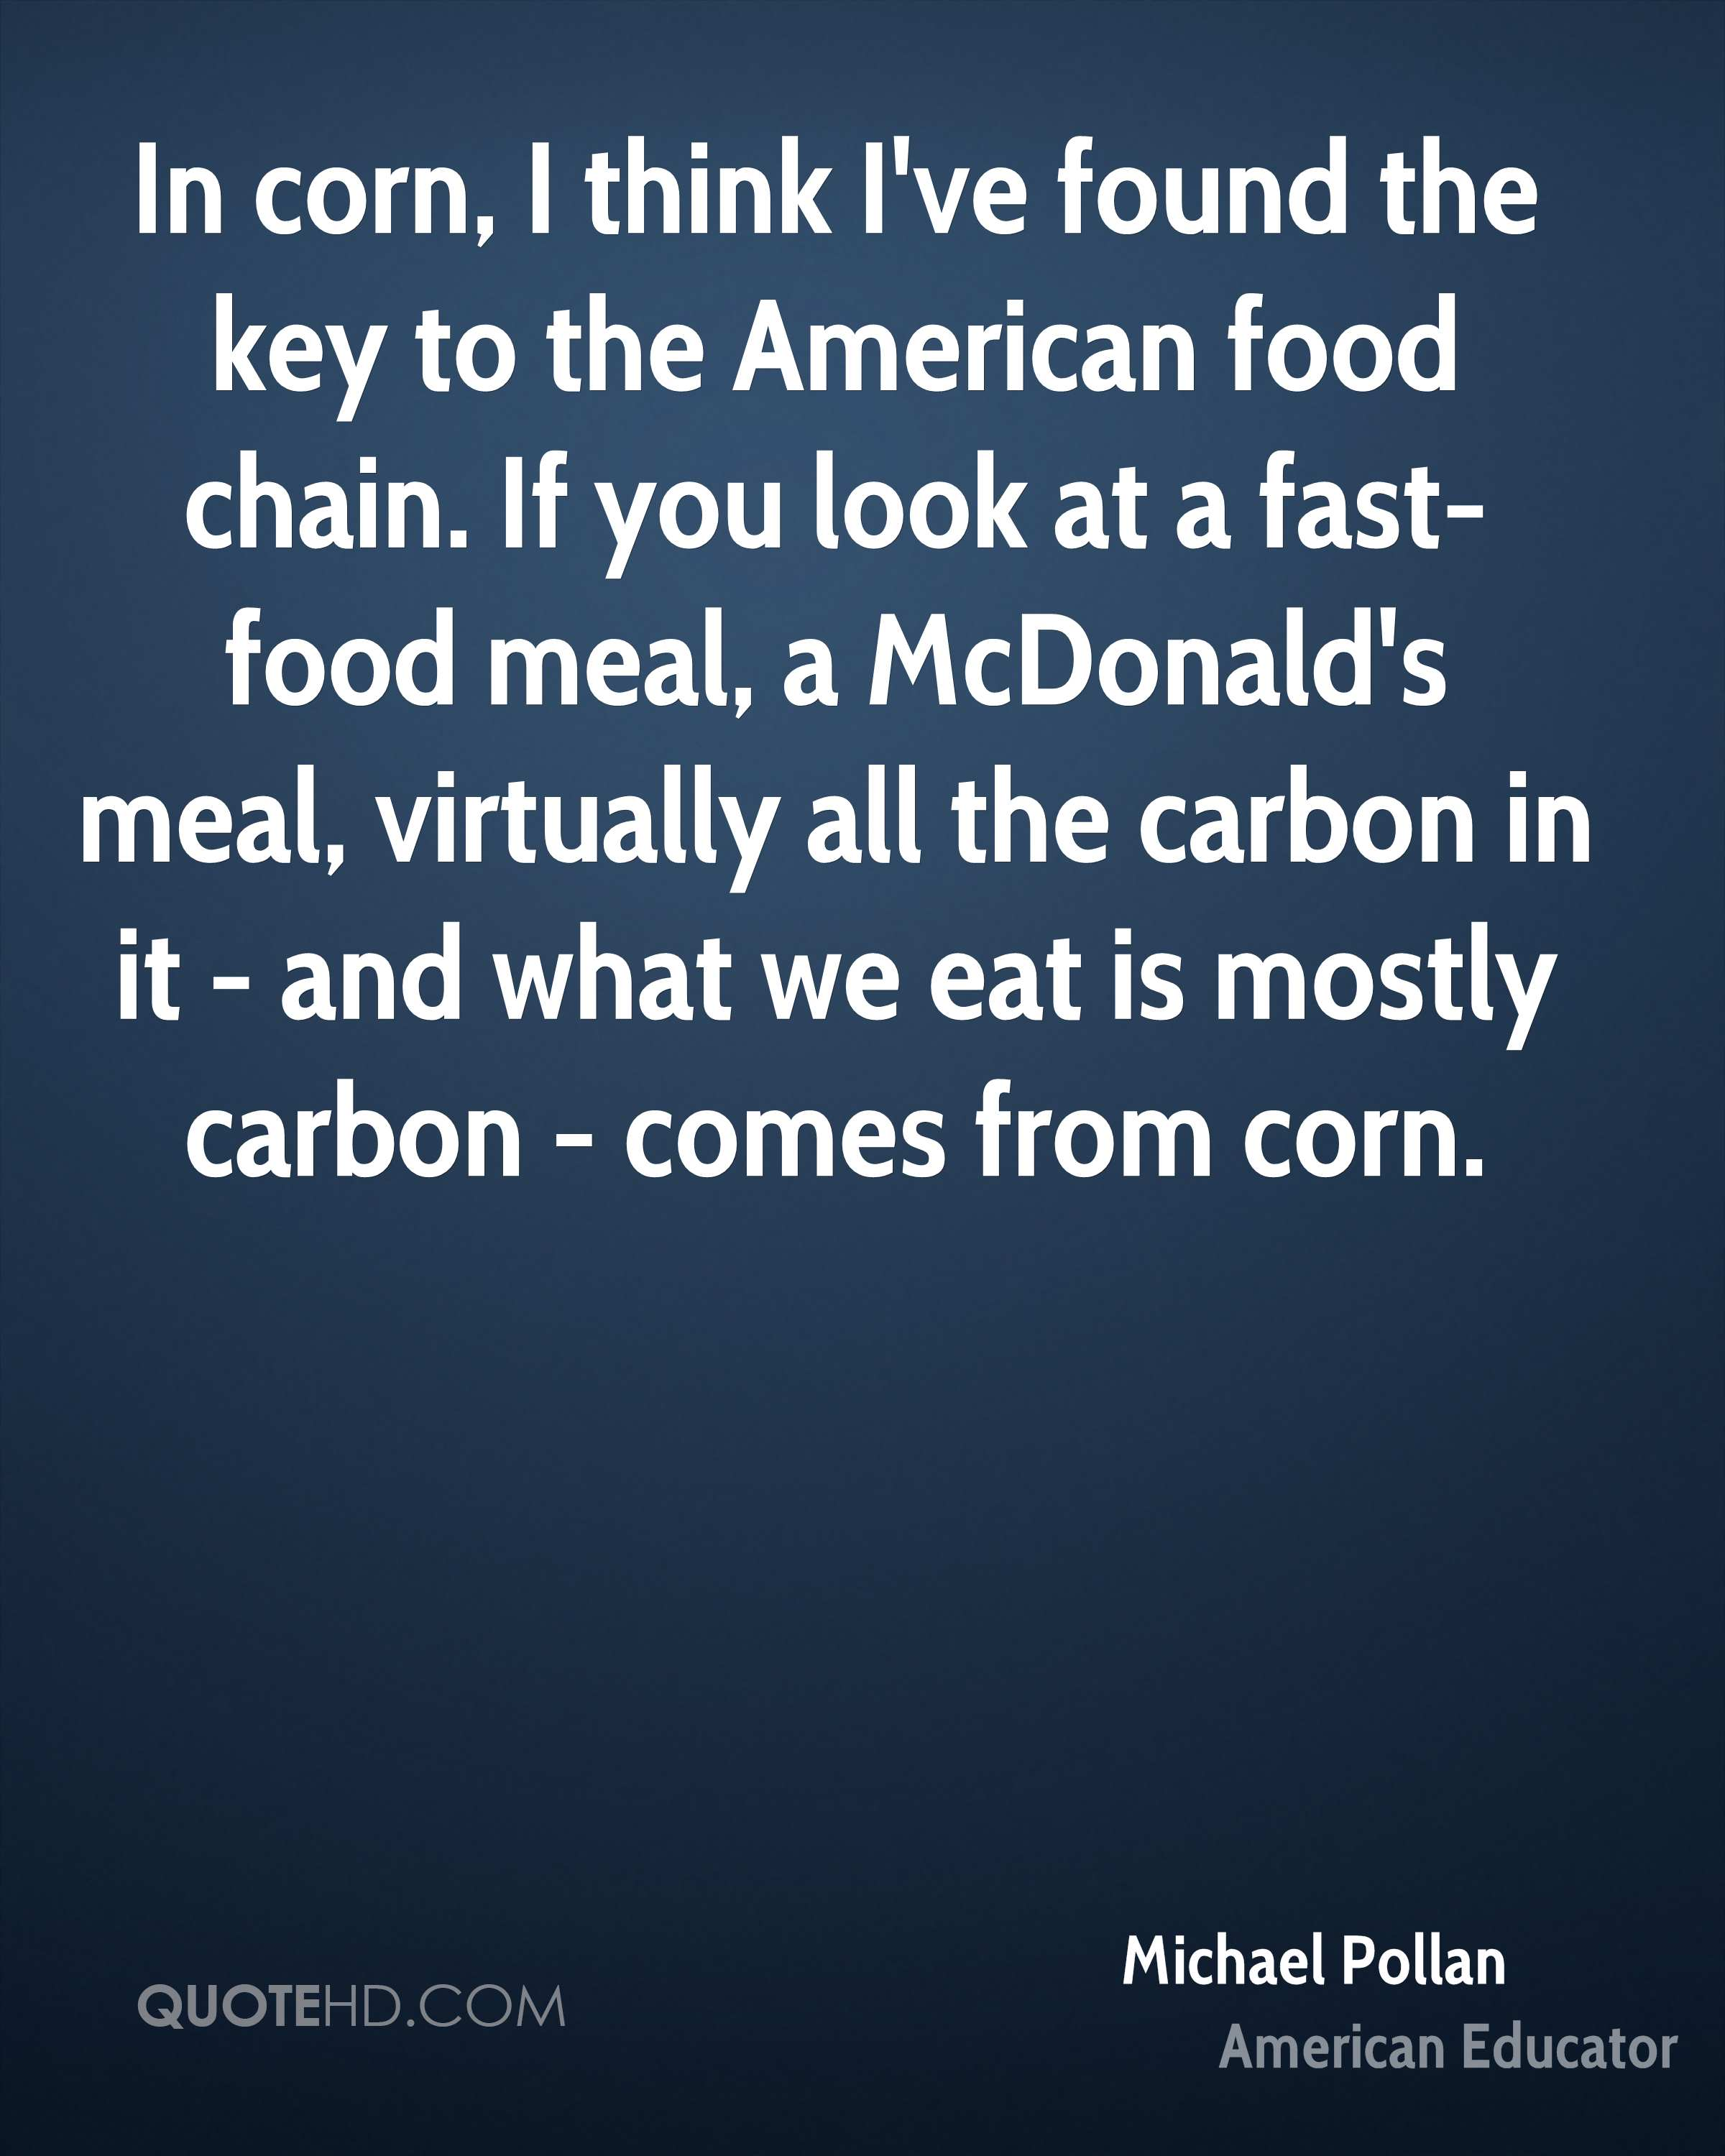 In corn, I think I've found the key to the American food chain. If you look at a fast-food meal, a McDonald's meal, virtually all the carbon in it - and what we eat is mostly carbon - comes from corn.